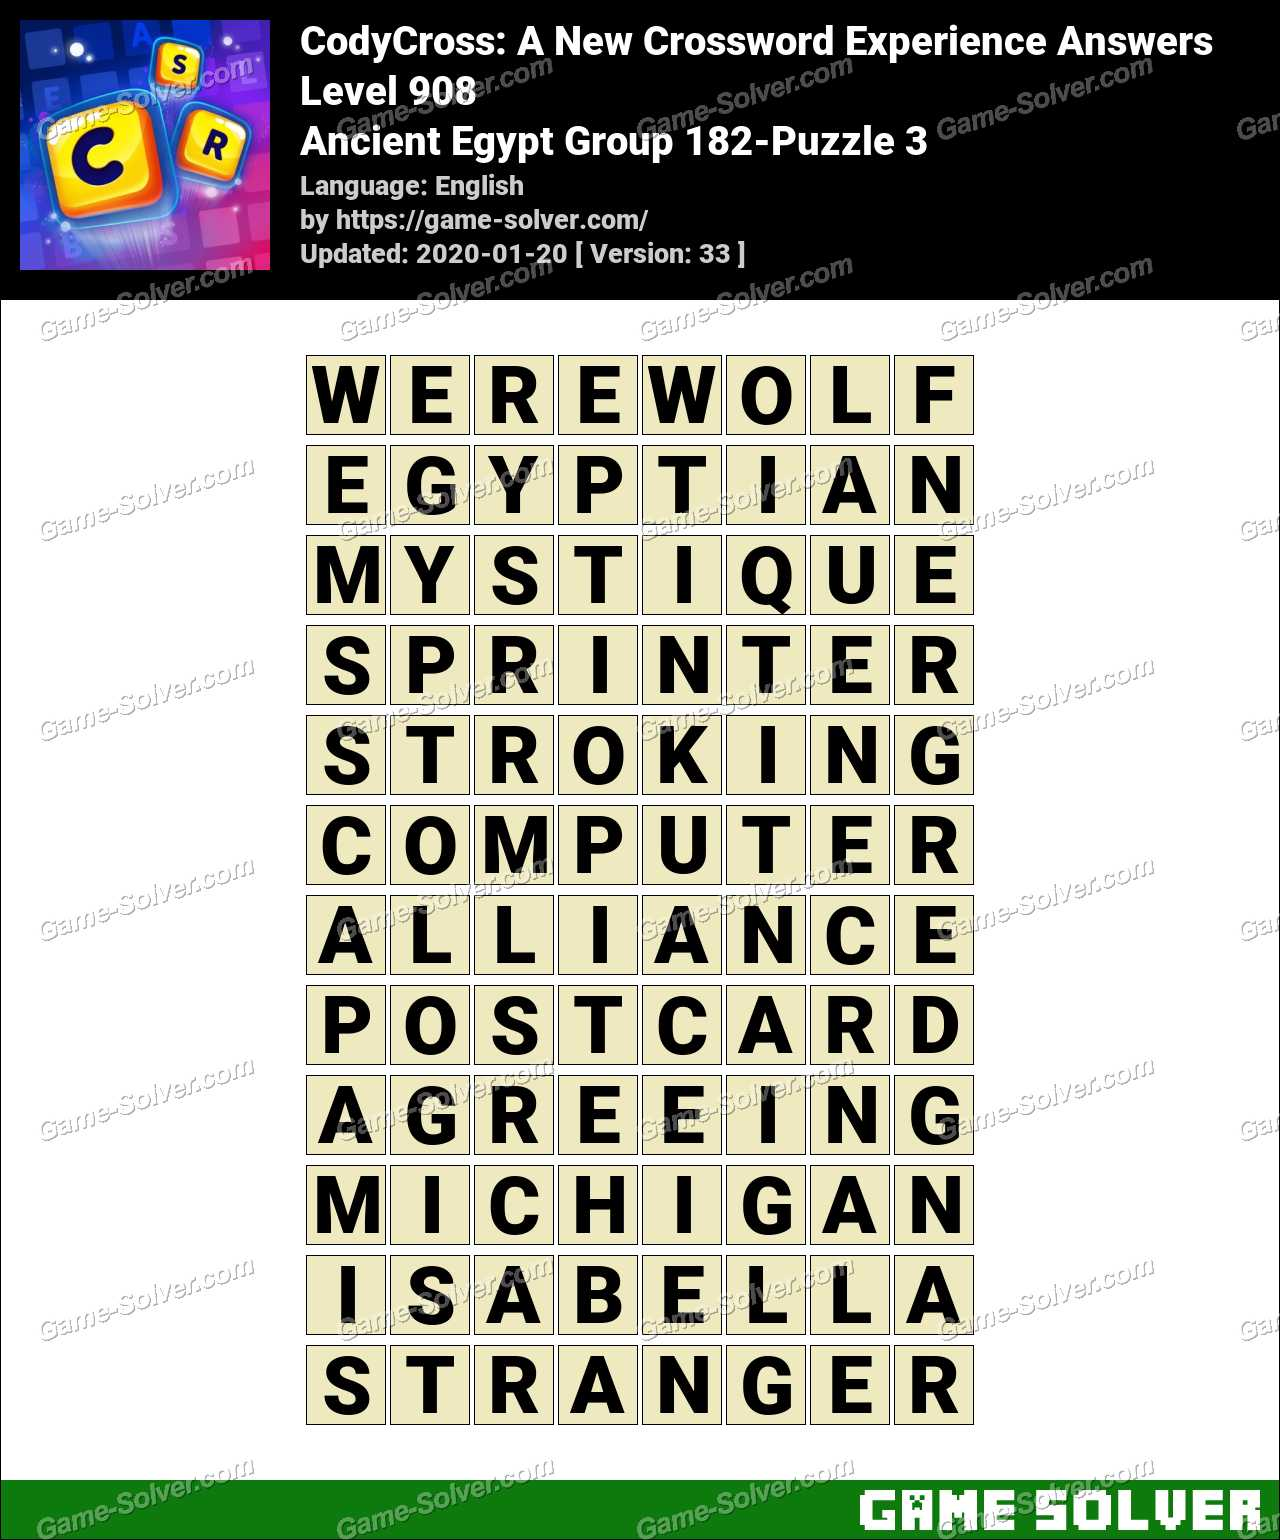 CodyCross Ancient Egypt Group 182-Puzzle 3 Answers